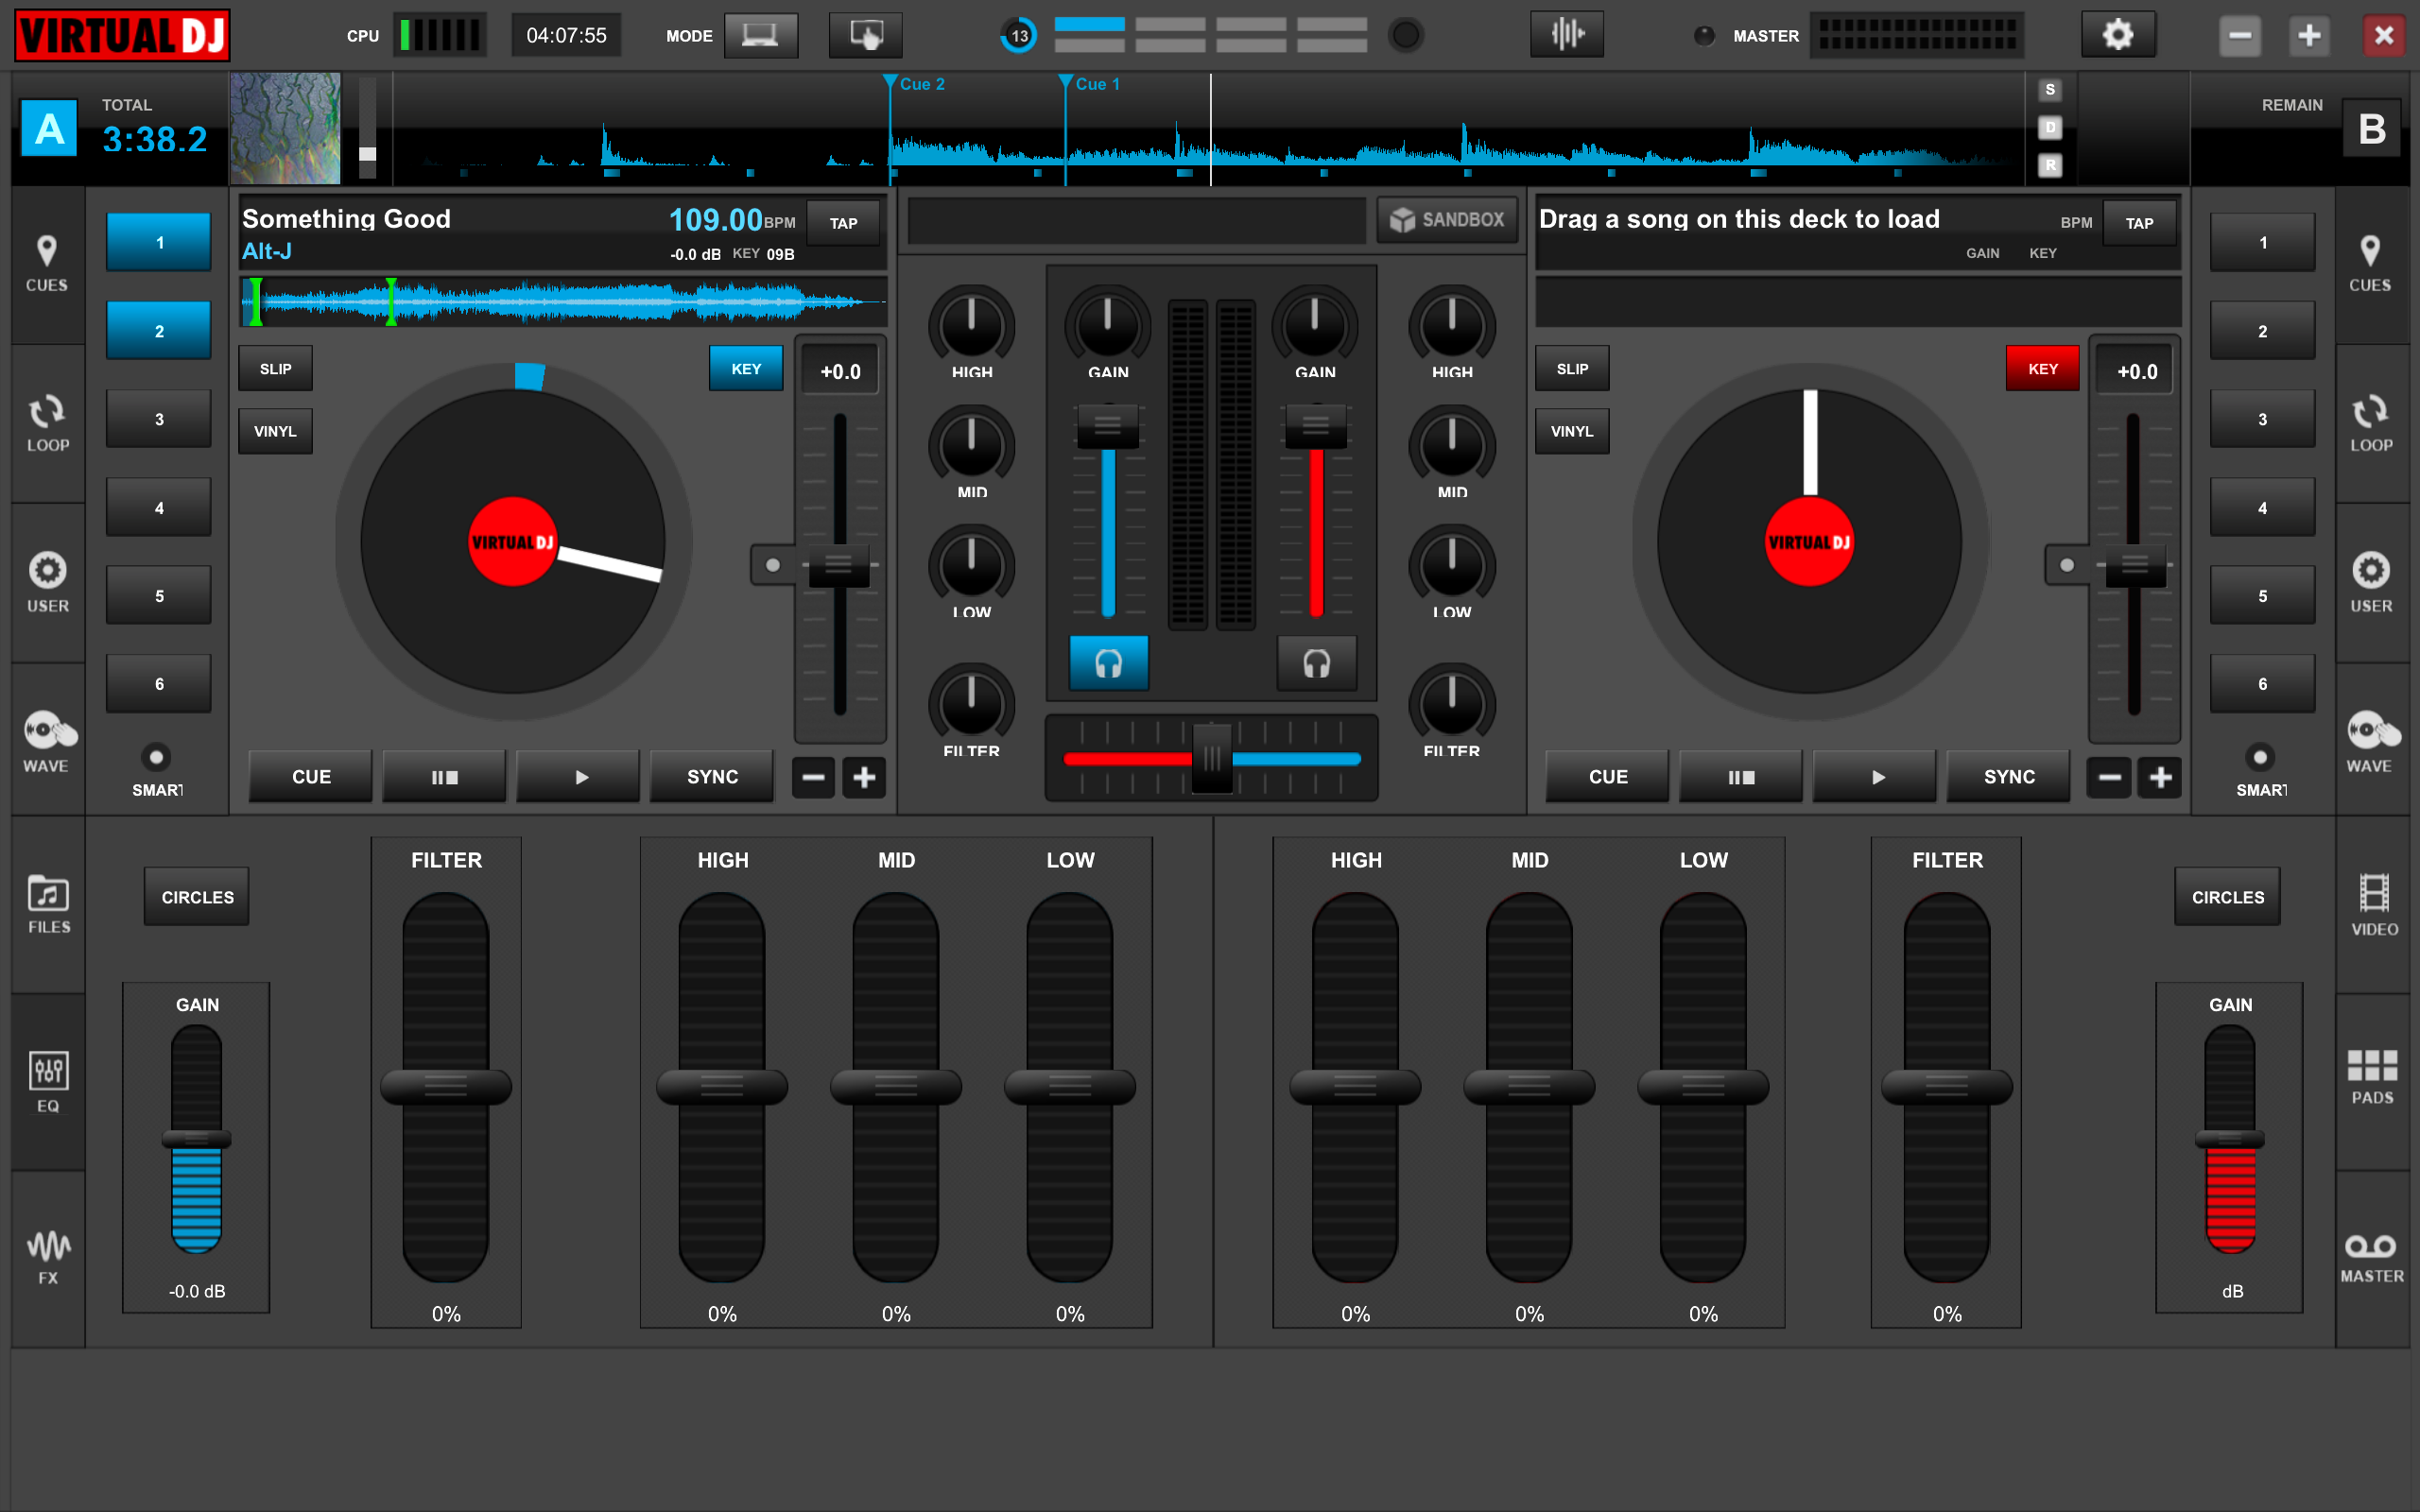 Virtual dj 8 software review digital dj tips for Virtual home software